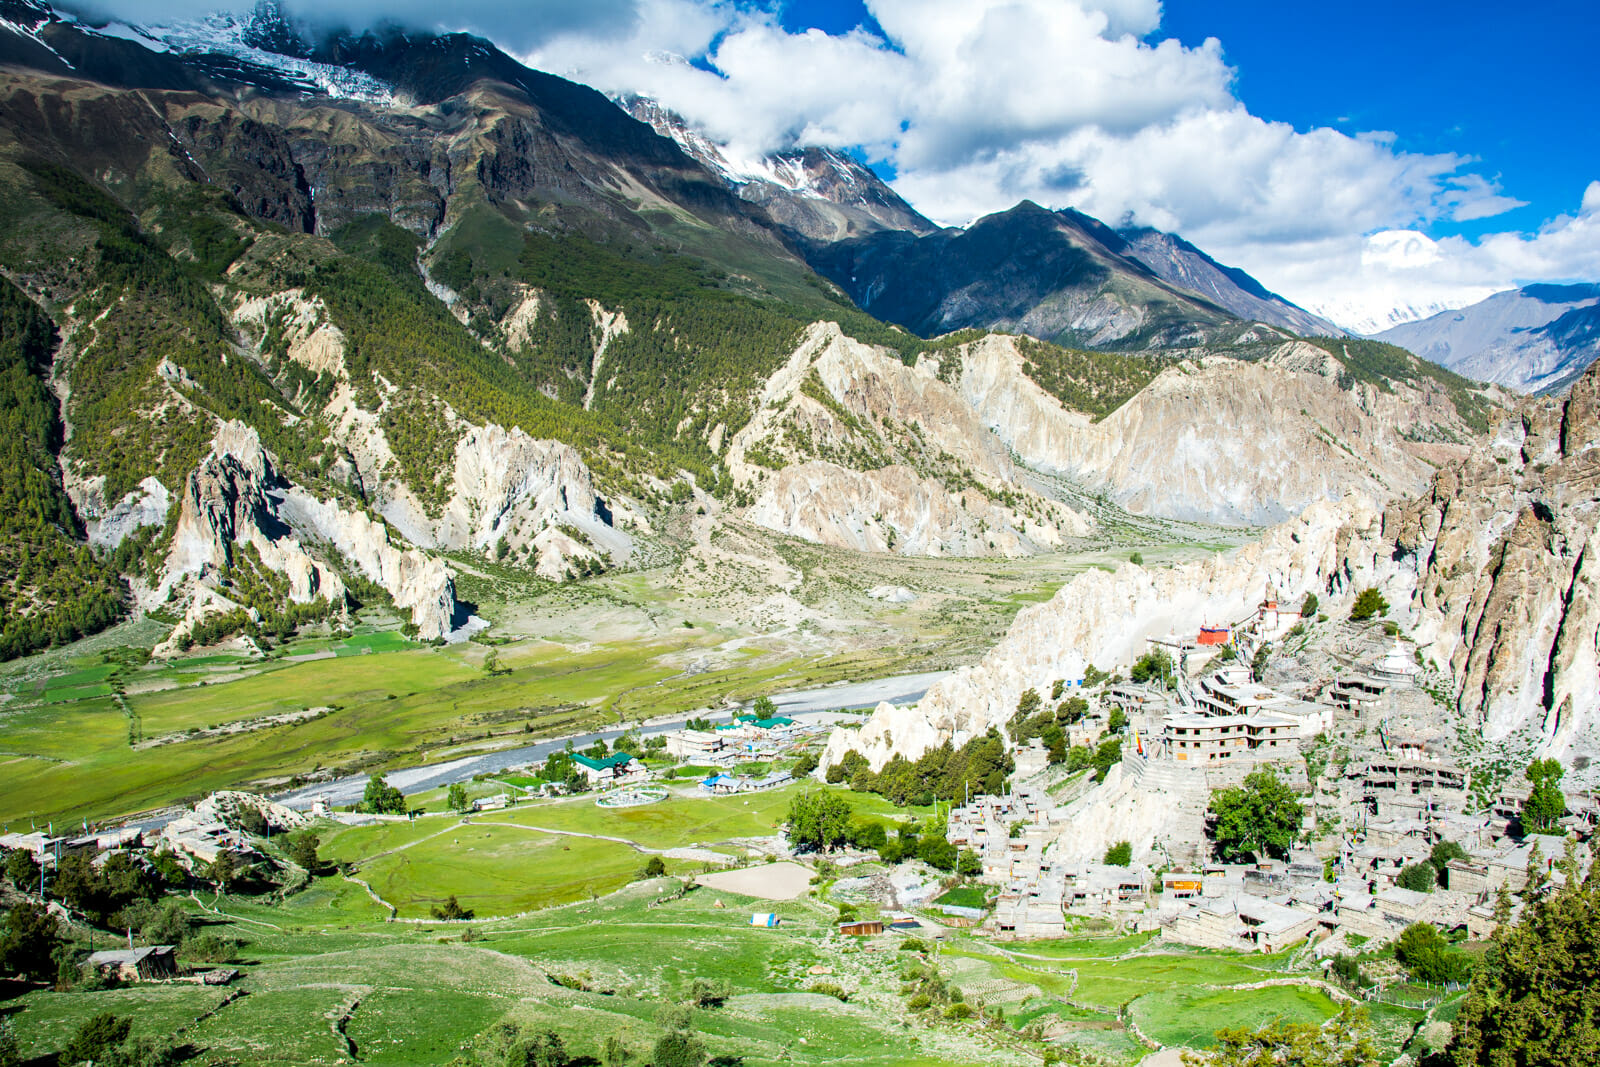 From Manang you need to backtrack a town or two to reach the Ice Lakes, Annapurna Circuit Trek